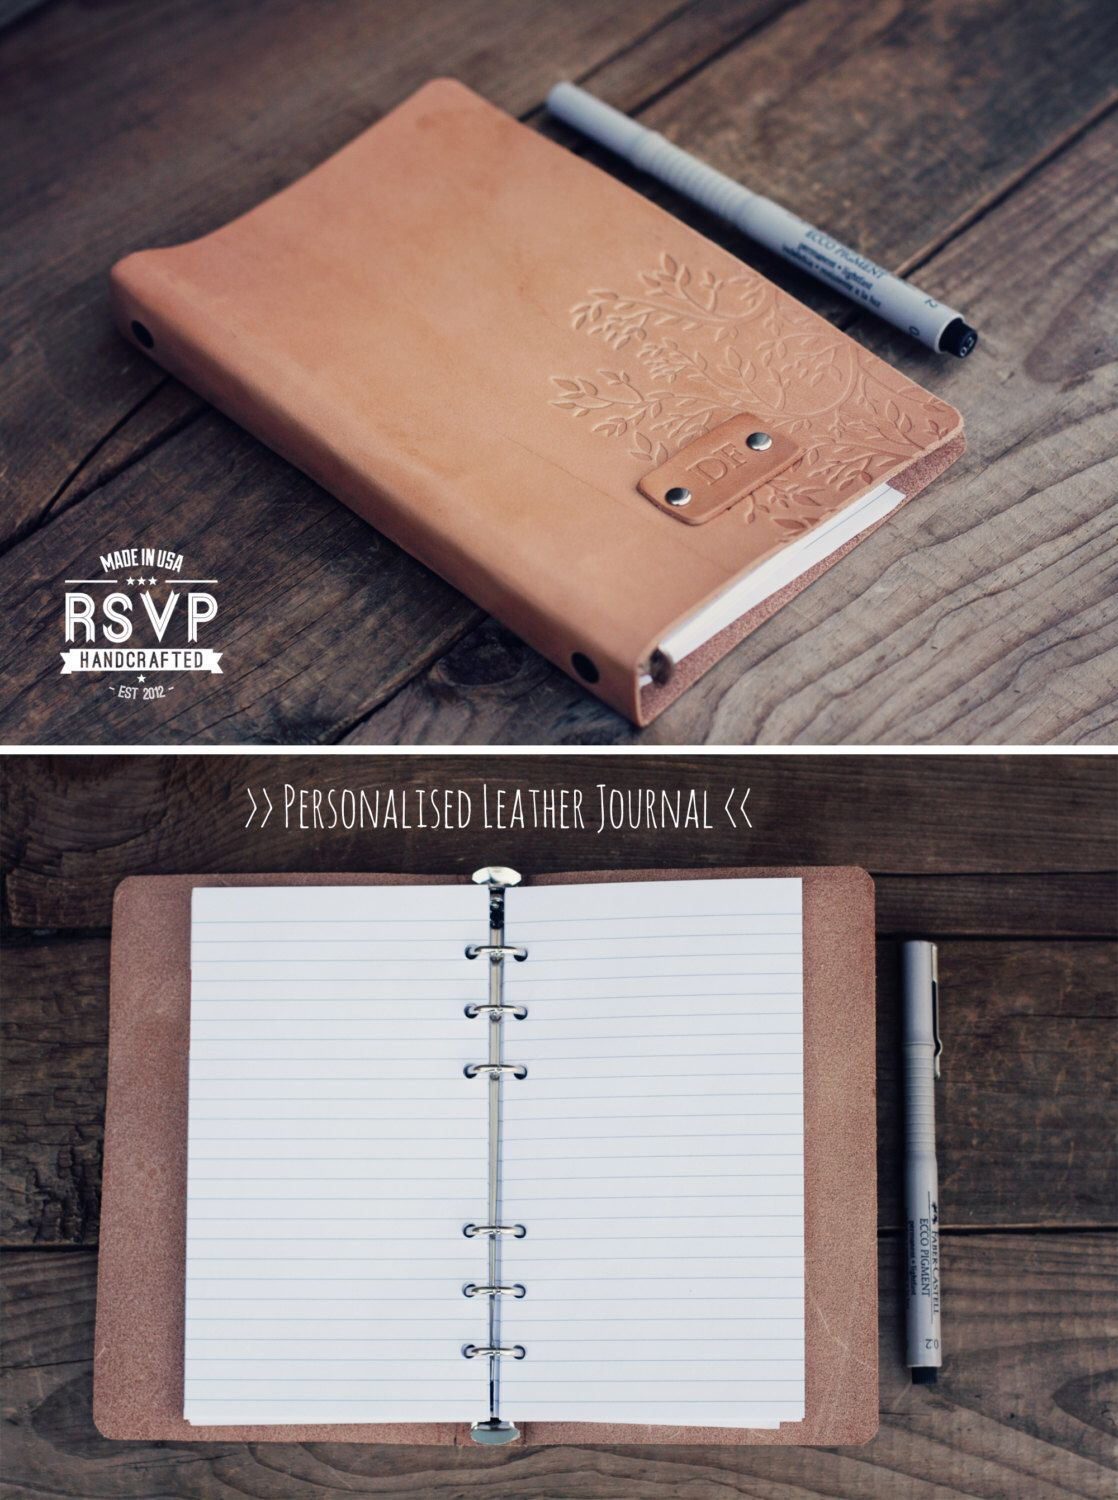 Leather journal Personalized, Notebook, Travel Diary, Journal, Sketchbook,leather journal, Tree branch, handmade, Custom text, name initials by RSVPhandcrafted on Etsy https://www.etsy.com/sg-en/listing/226763334/leather-journal-personalized-notebook